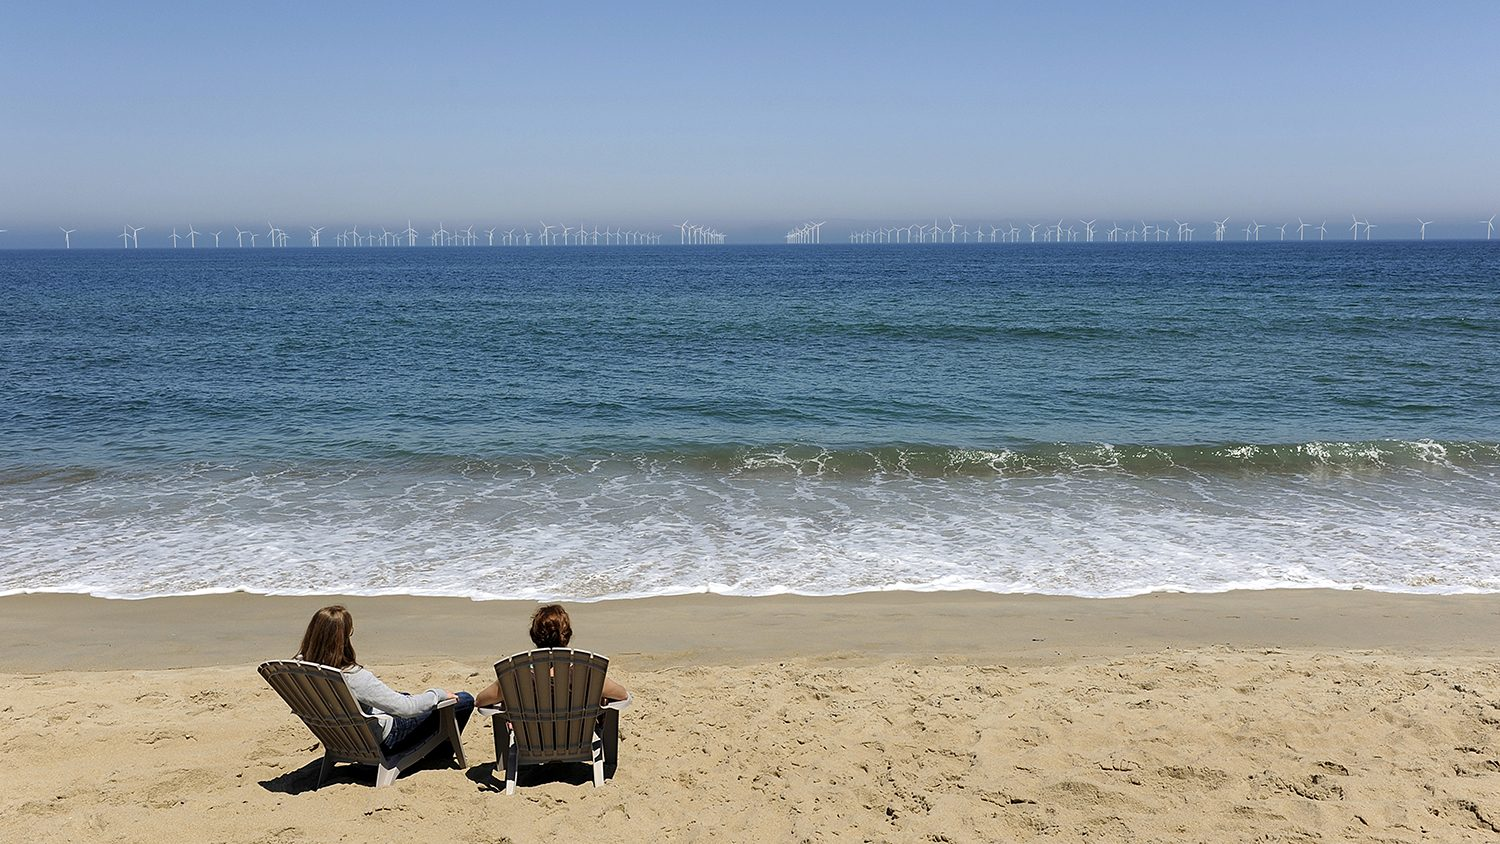 Two people on beach with wind farm in the distance.